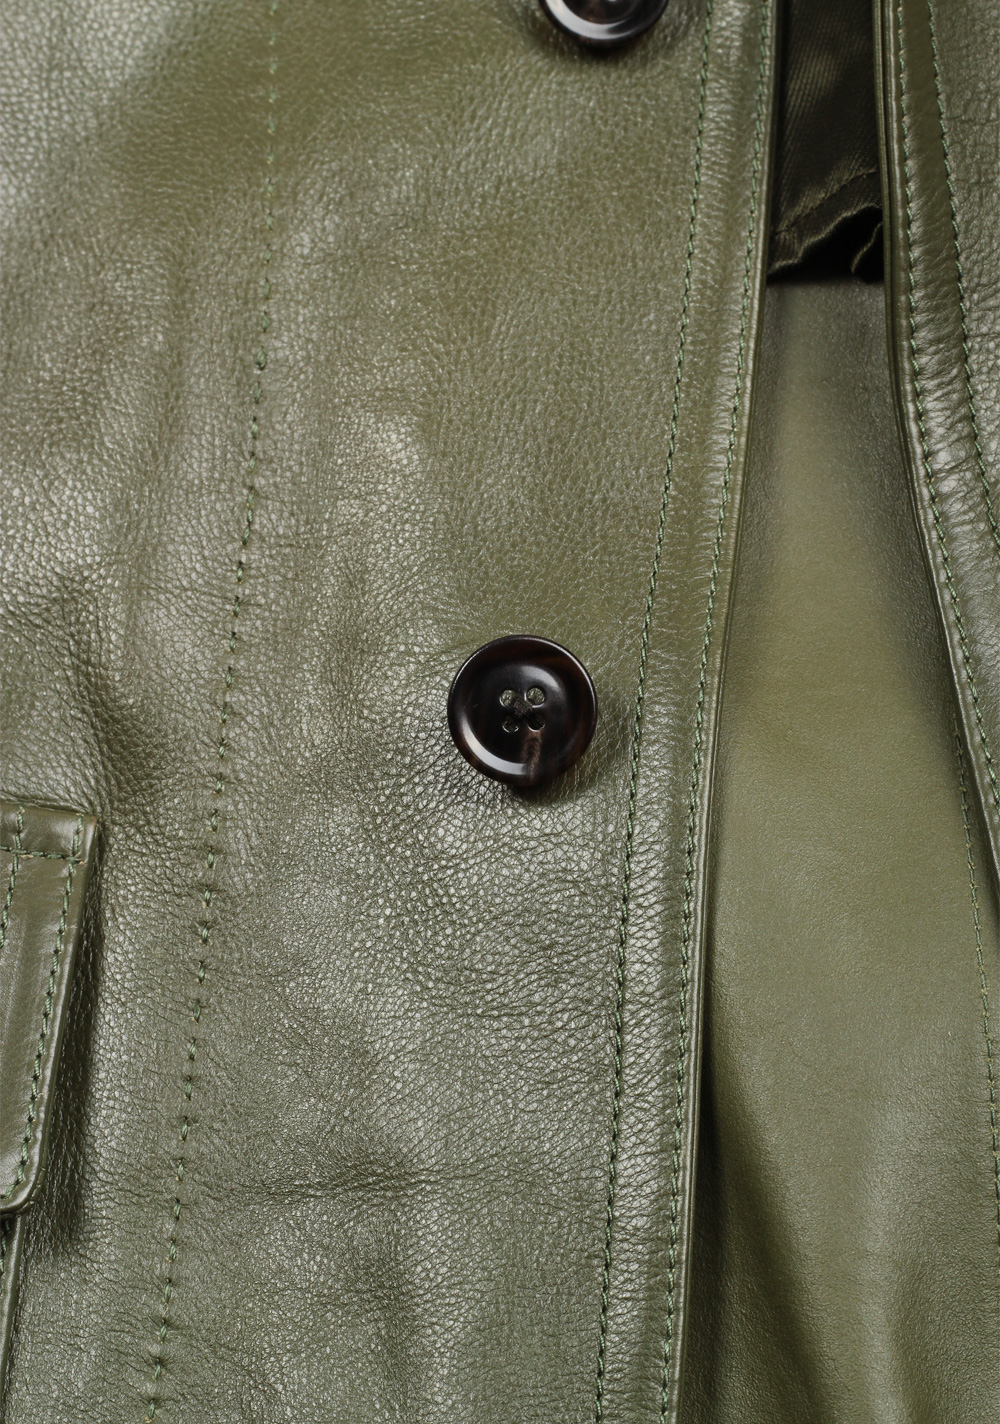 TOM FORD Green Leather Jacket Coat Size 48 / 38R U.S. Outerwear   Costume Limité